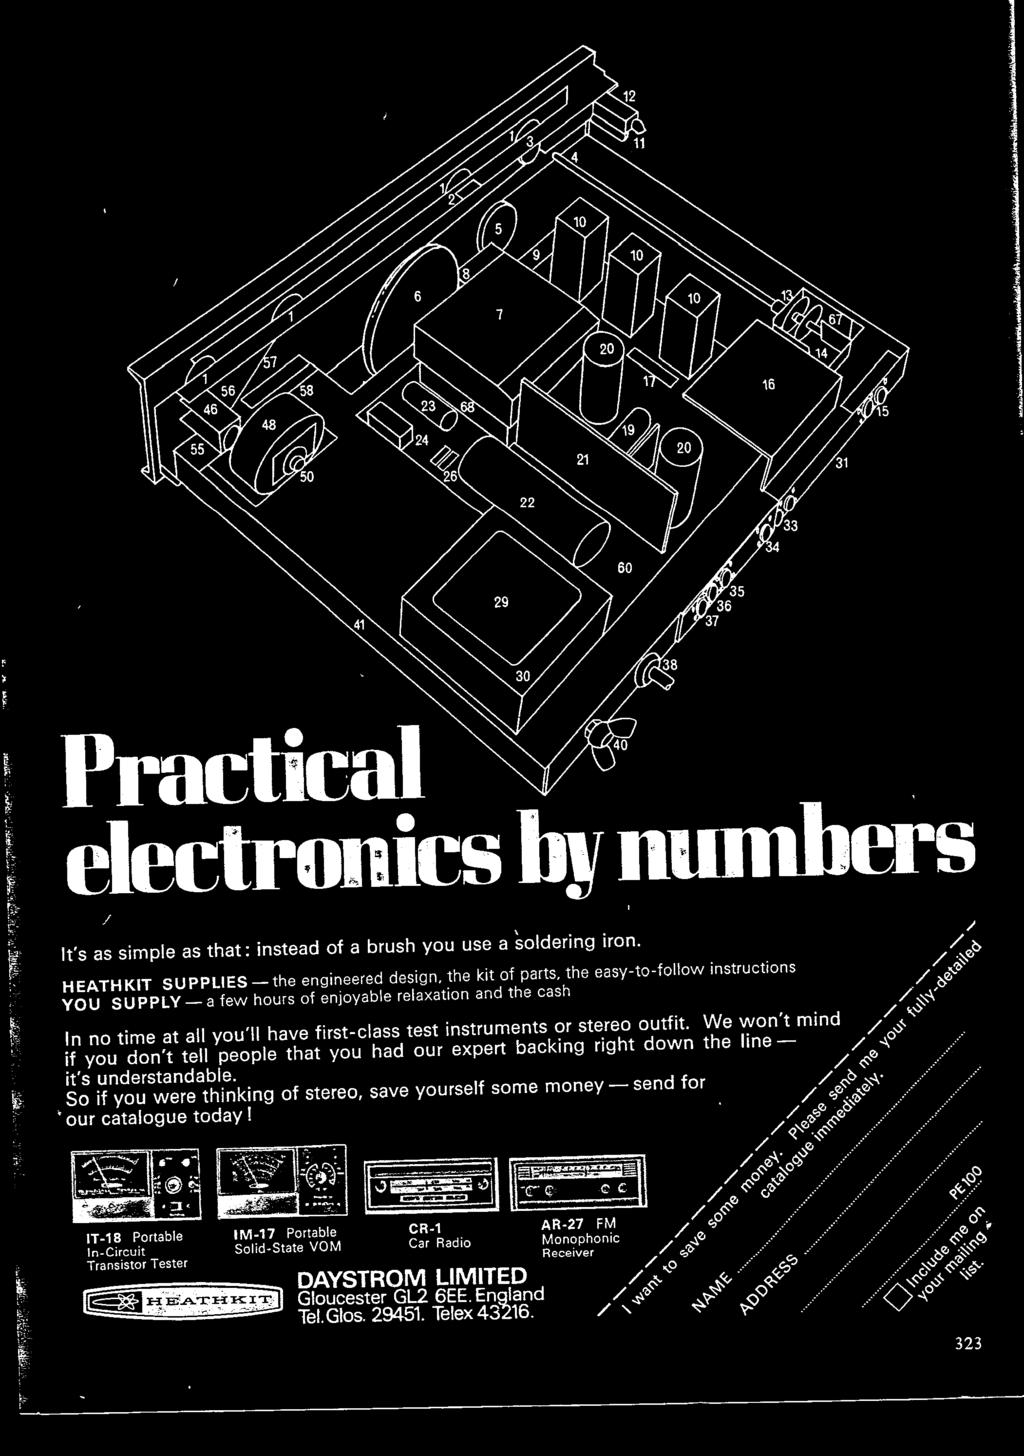 May 1963 Three Shillings Pdf Solderable Perfboard Med Copper Pad Circuit Board West Florida 1t 18 Portable In Transistor Tester Im 17 Solid State